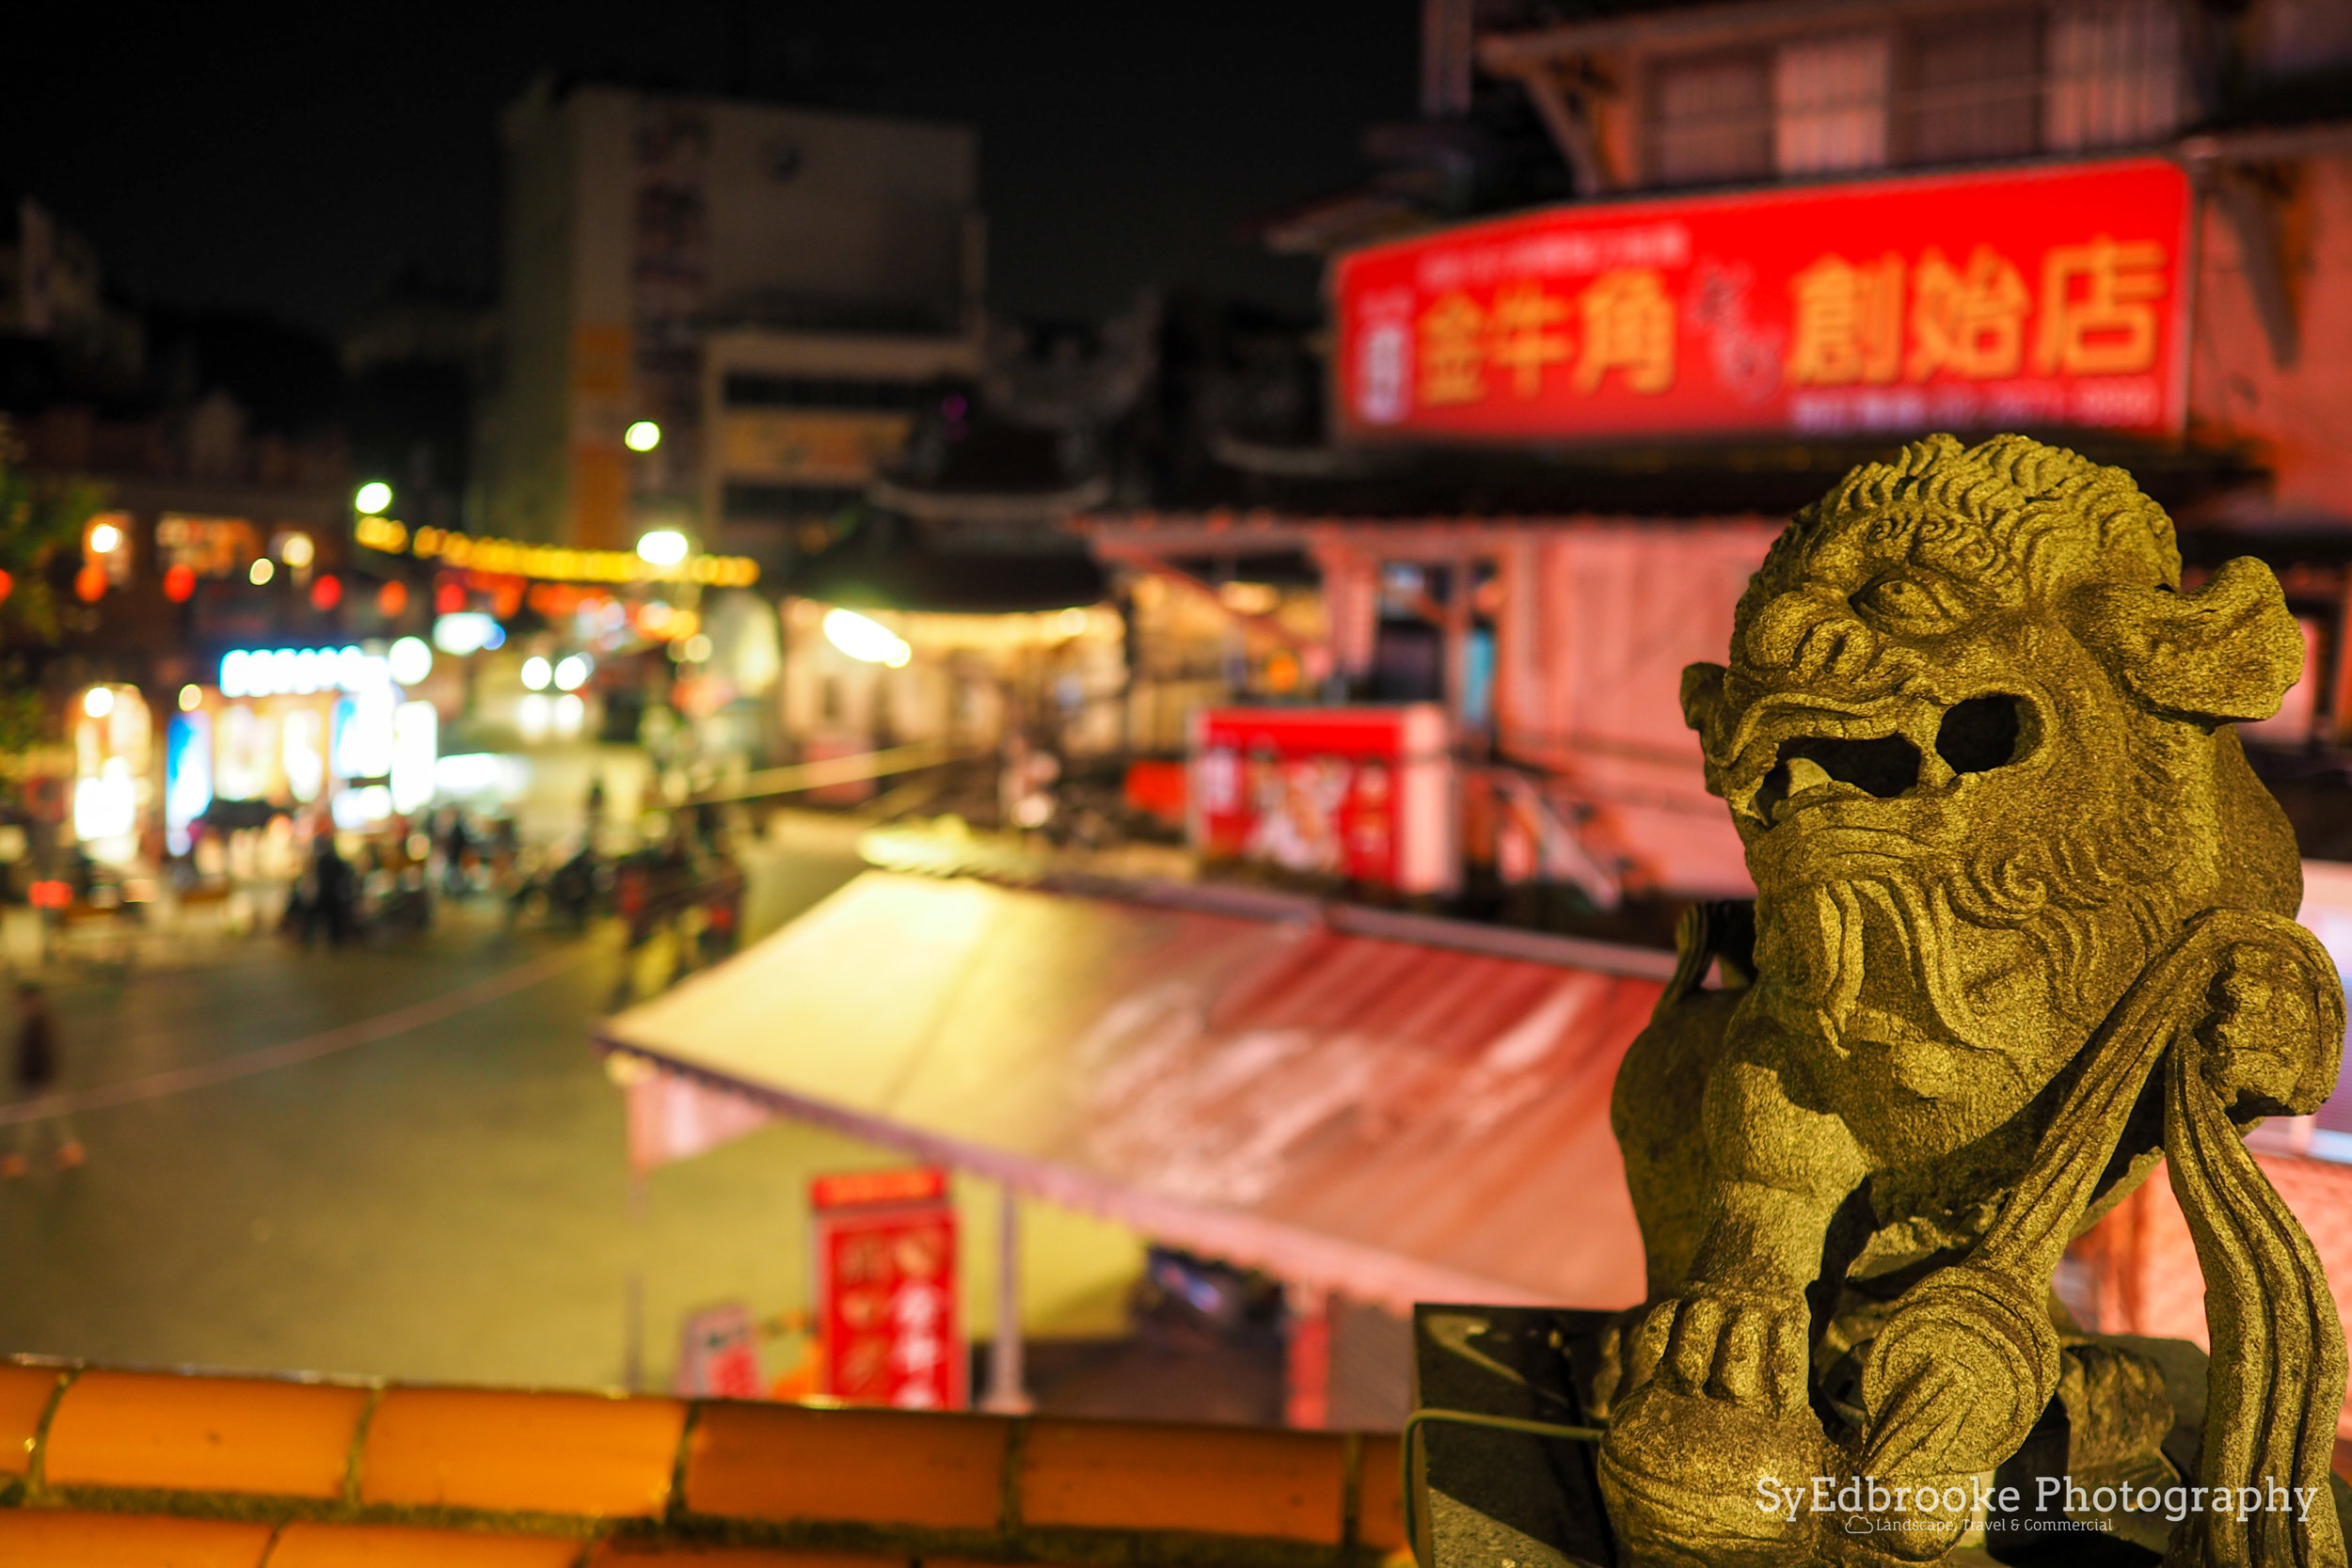 Standing guard over the temple & night market. f1.8, ISO 200, 1/6, 17mm